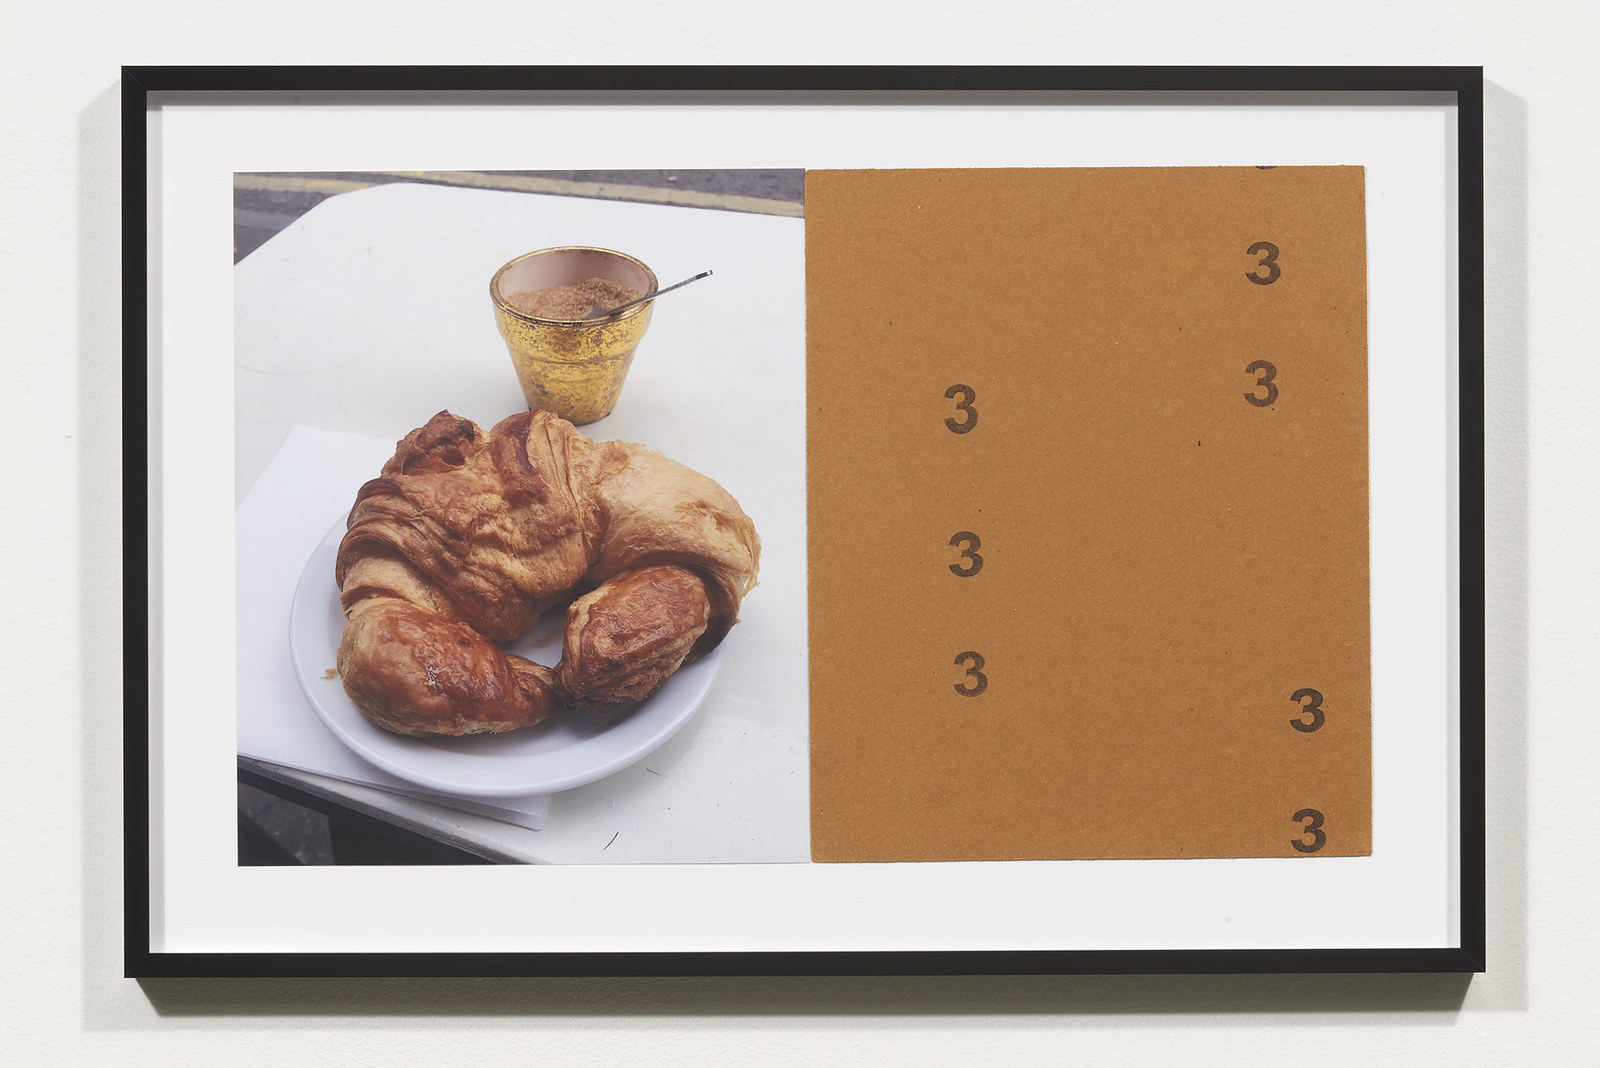 Wermers_Croissants & Architecture #12, 2016_C-print, sandpaper sheet, framed_14 3_8 x 21 1_2 in_NW00053PG